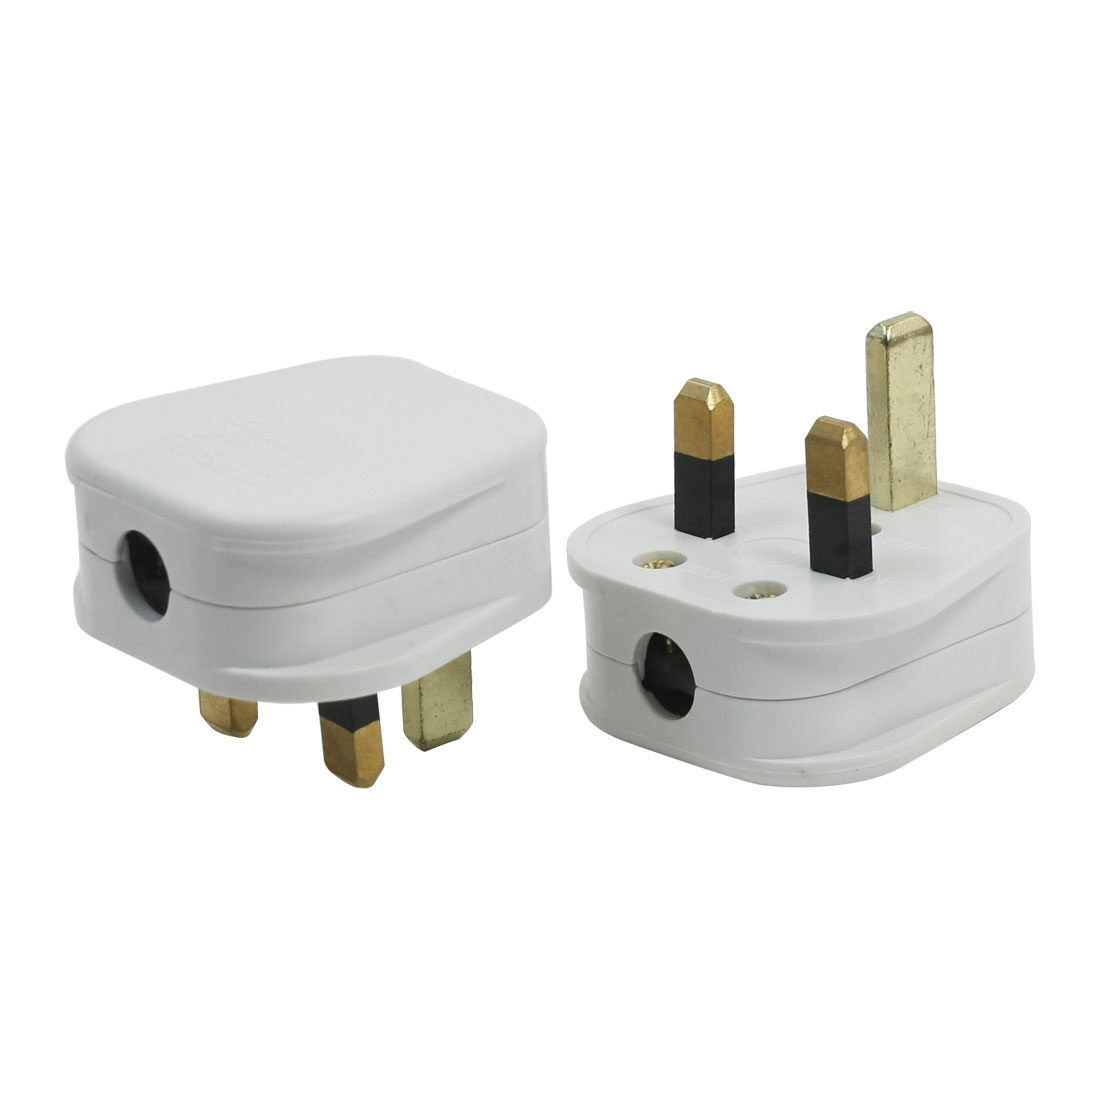 AC 250V 13A UK Plug Plastic Adapter Connector White 2pcs for 10mm Cord Cable